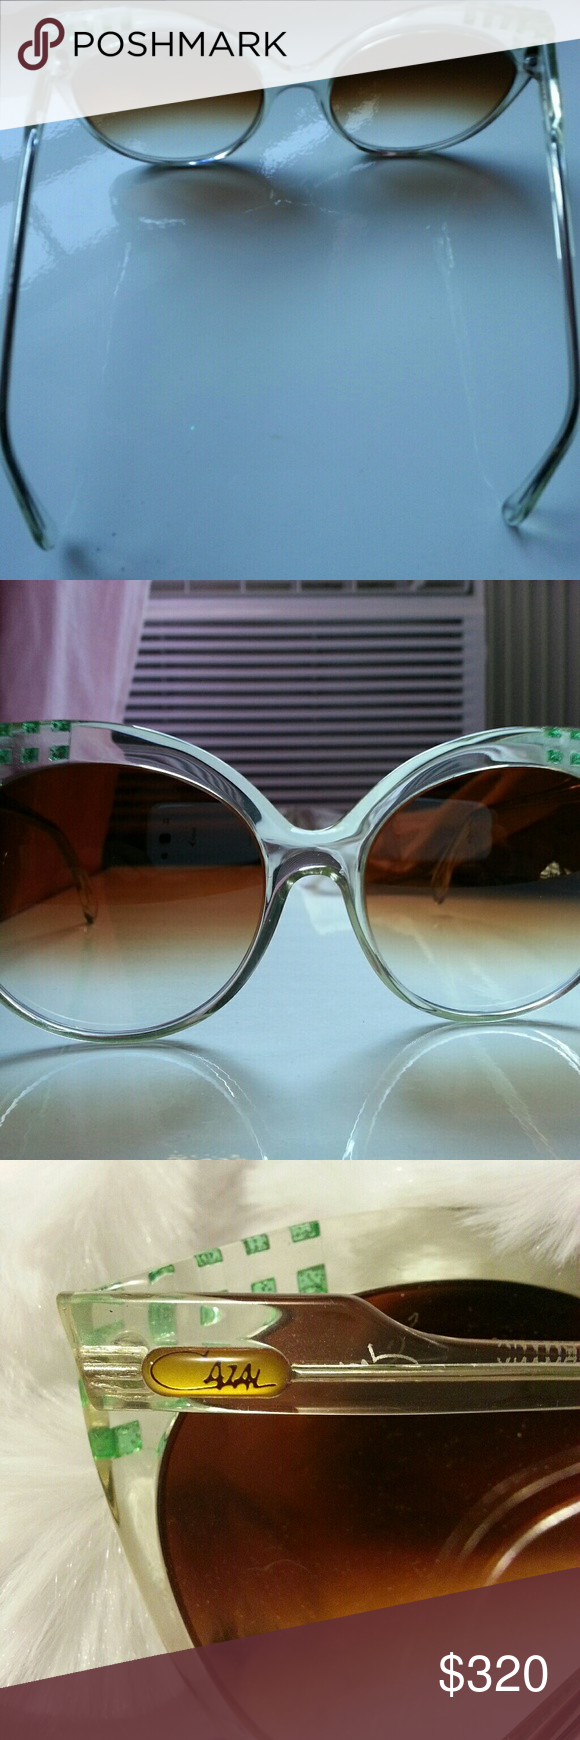 1ae8d010b816 Cazal Sunglasses Vintage 1980 s Awesome and Rare! Cazal model 507.  Translucent frames with green